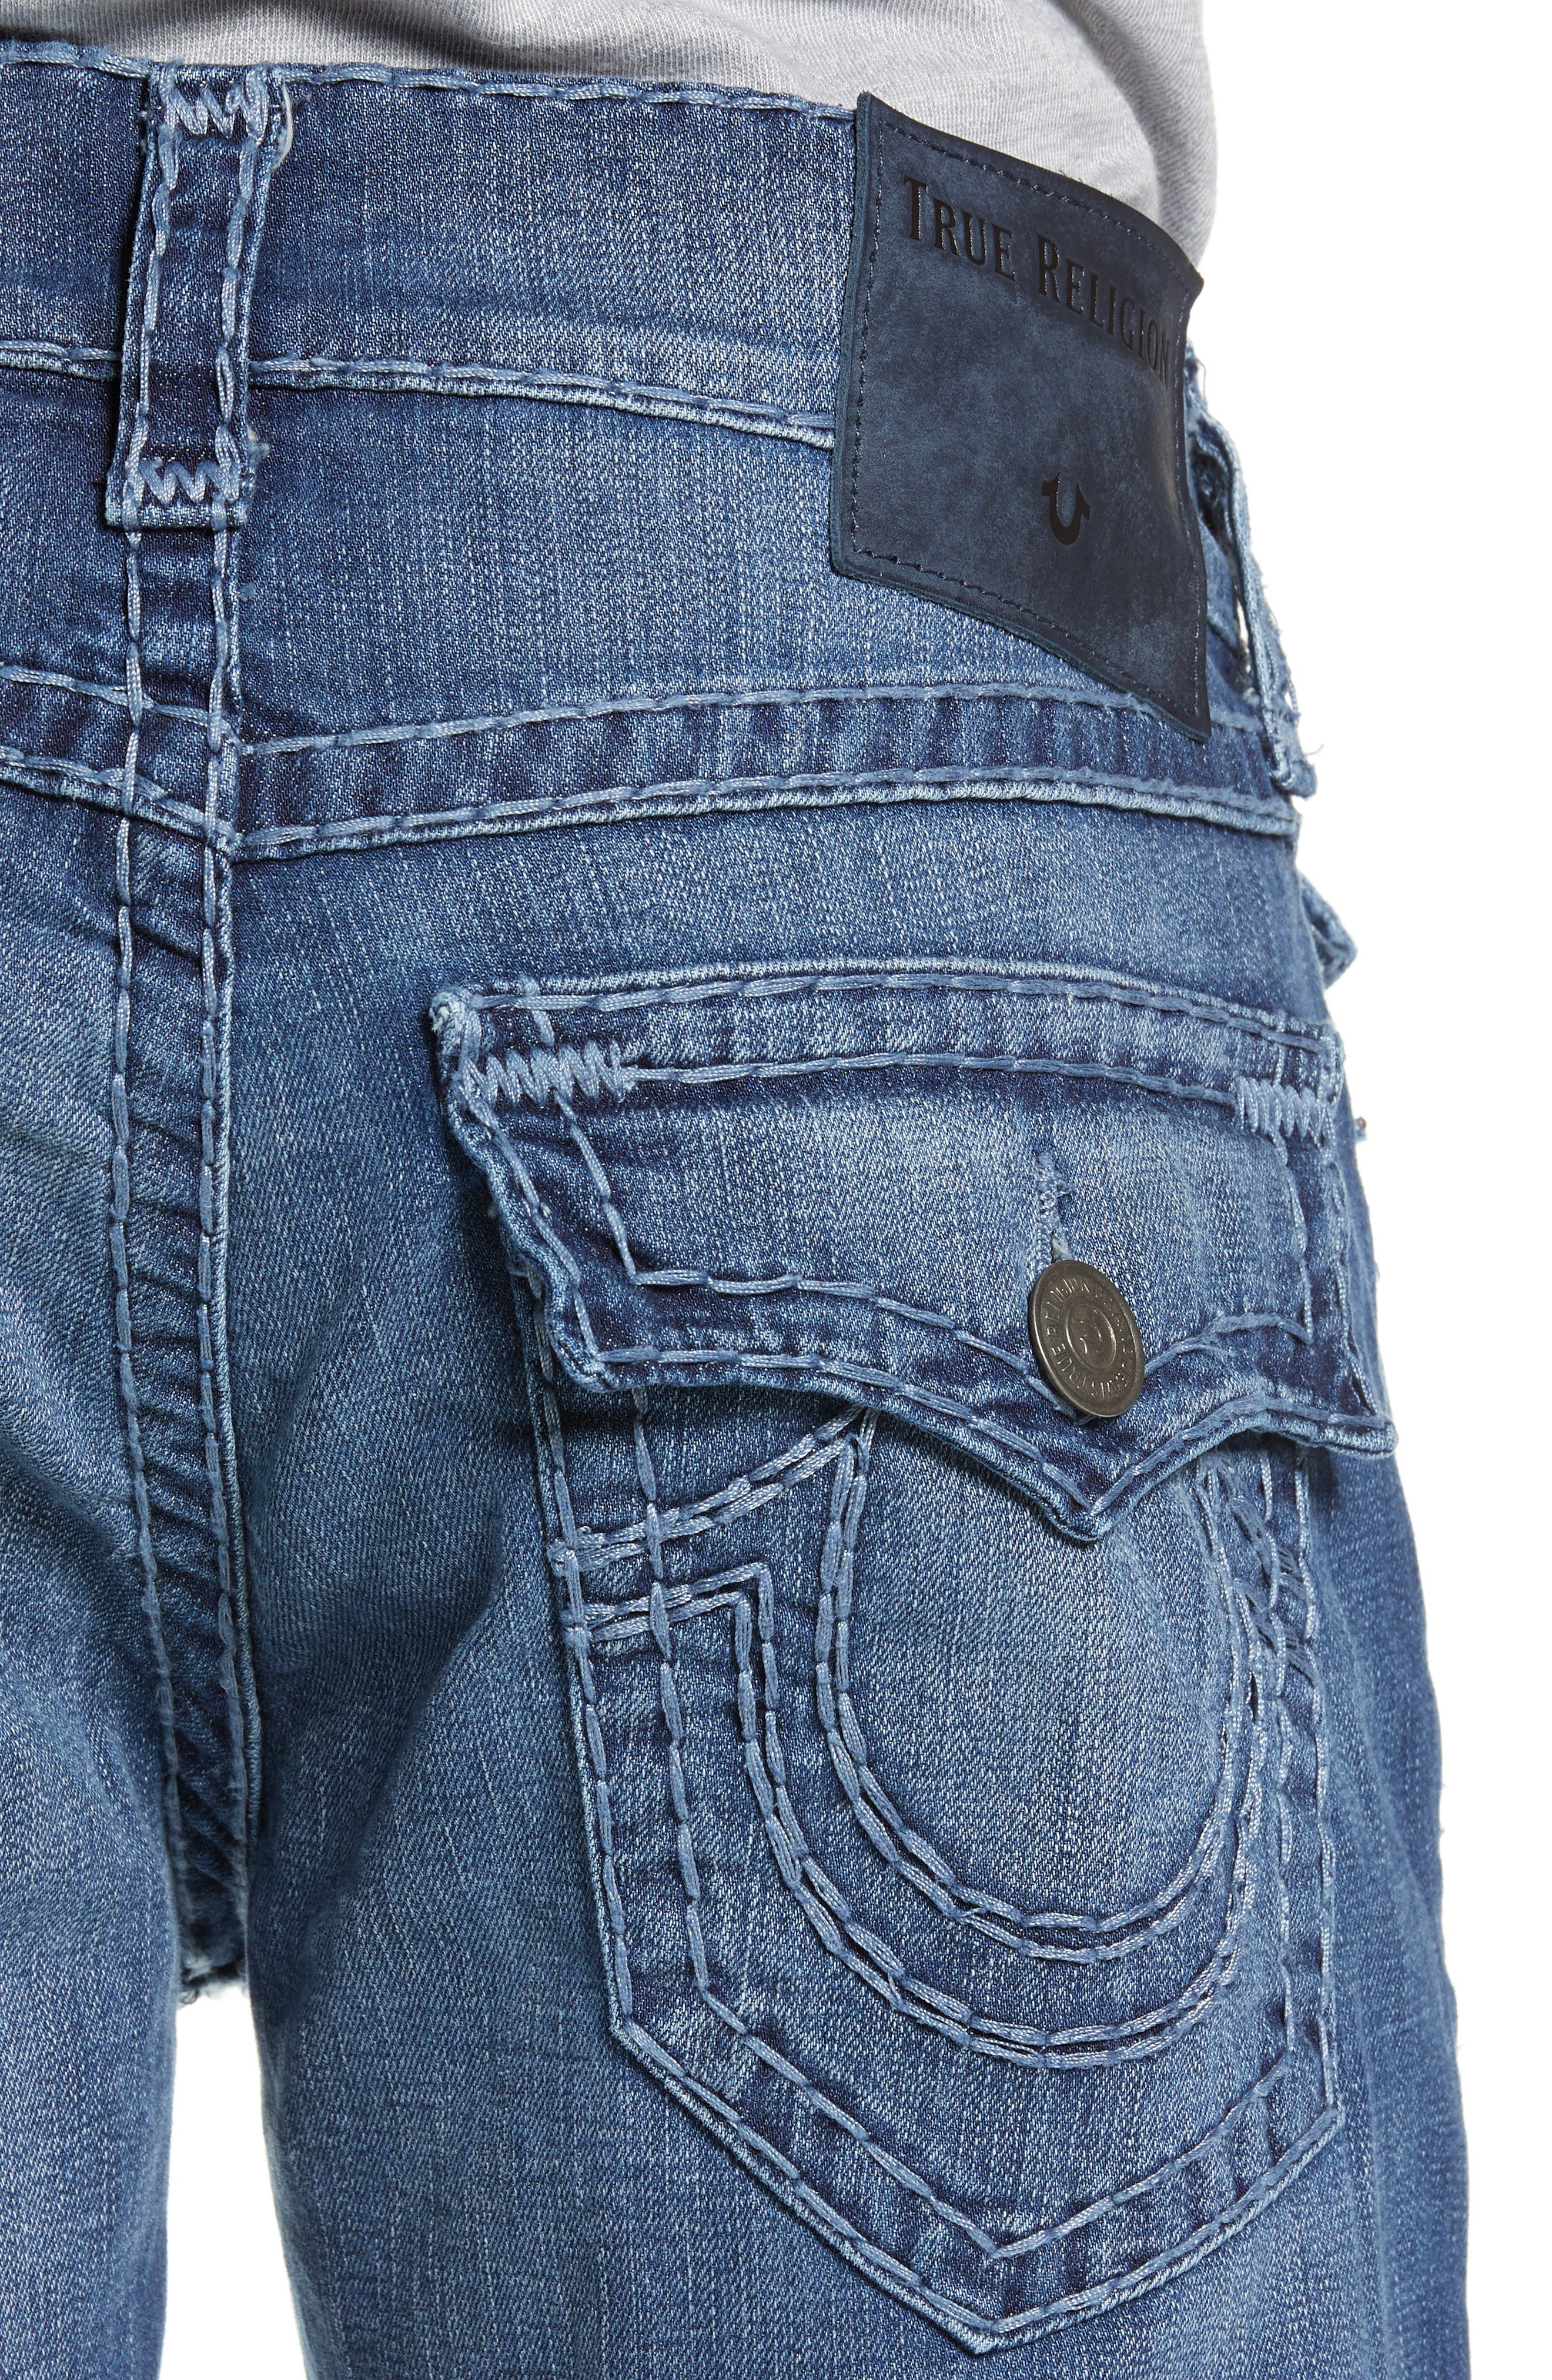 Ricky Relaxed Fit Jeans,                             Alternate thumbnail 4, color,                             HIGH FREQUENCY